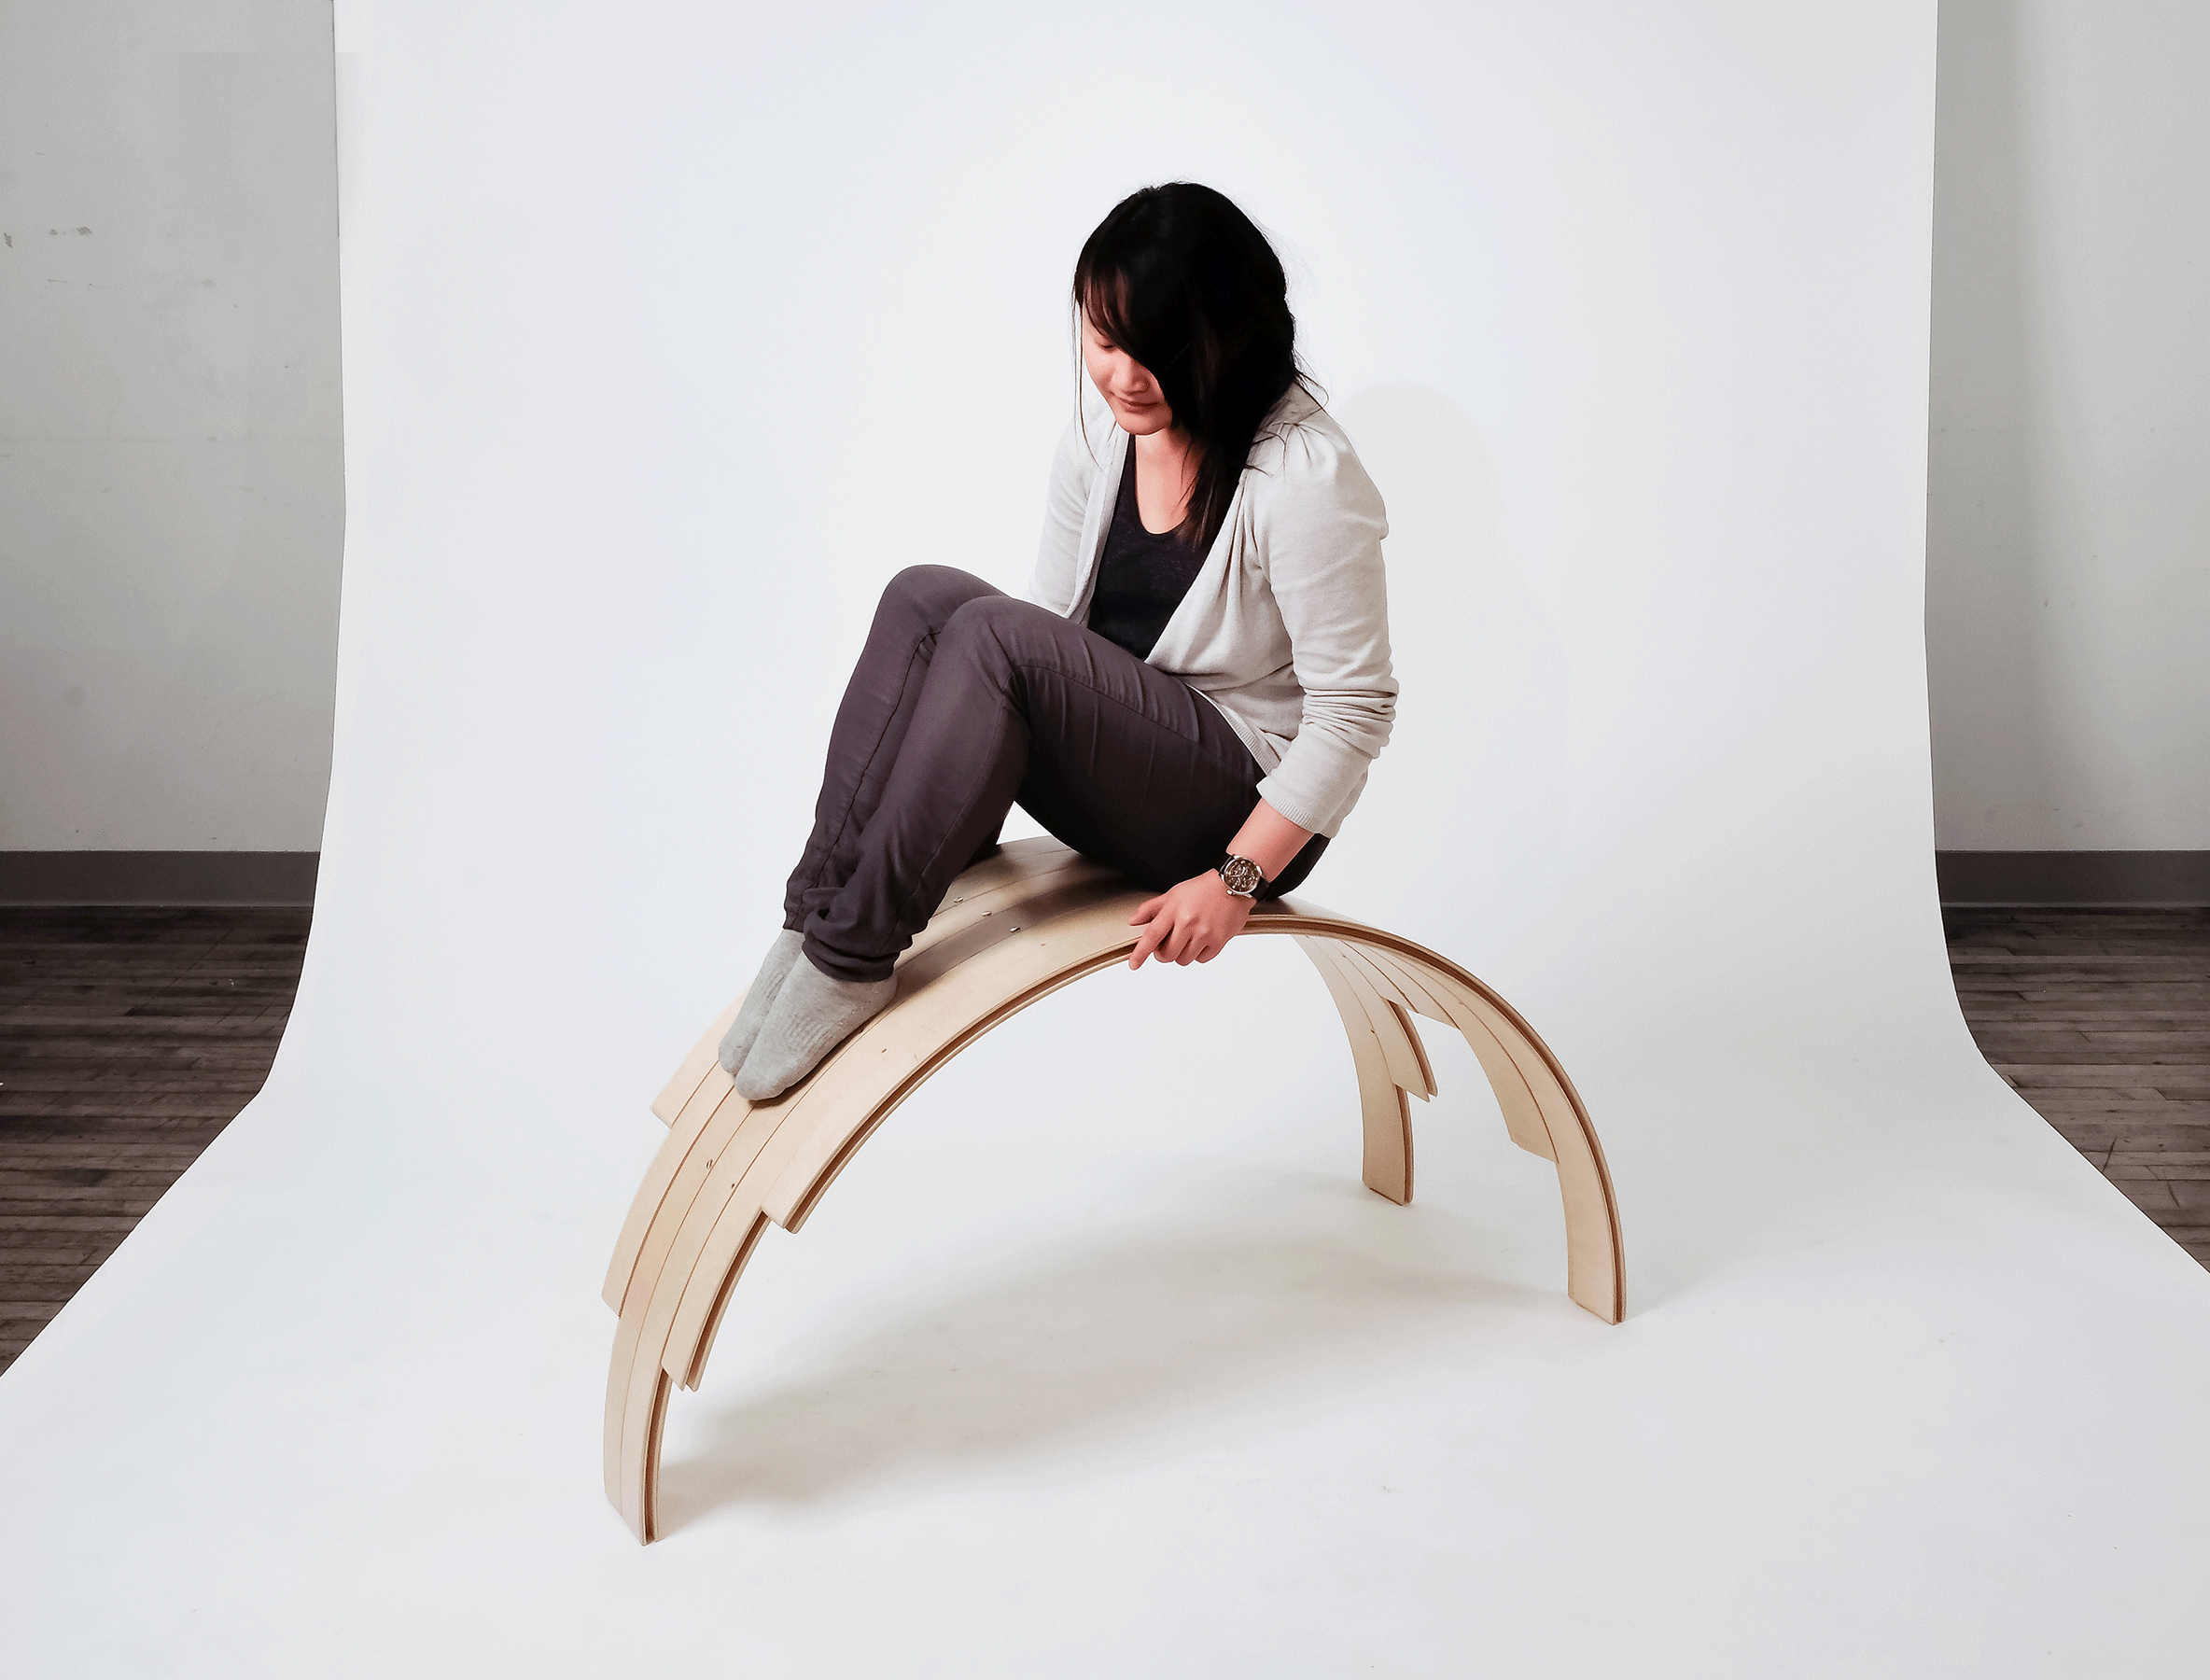 woodworking-6_x_1800.png